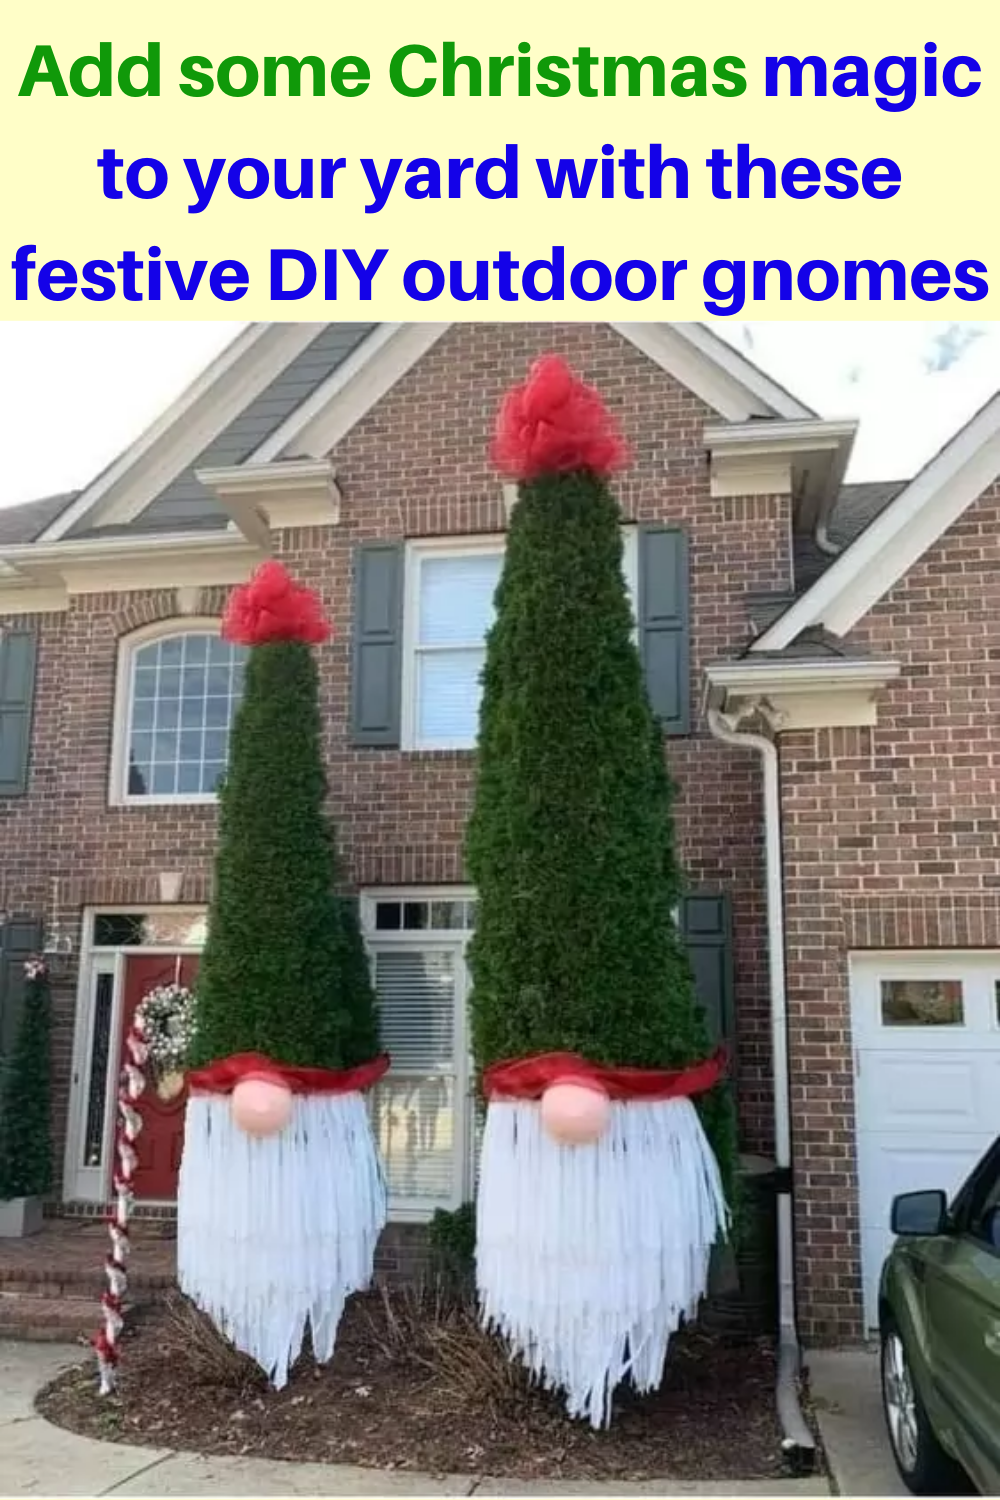 Add Some Christmas Magic To Your Yard With These Festive Diy Outdoor Gnomes In 2021 Outdoor Christmas Tree Christmas Yard Decorations Christmas Knomes